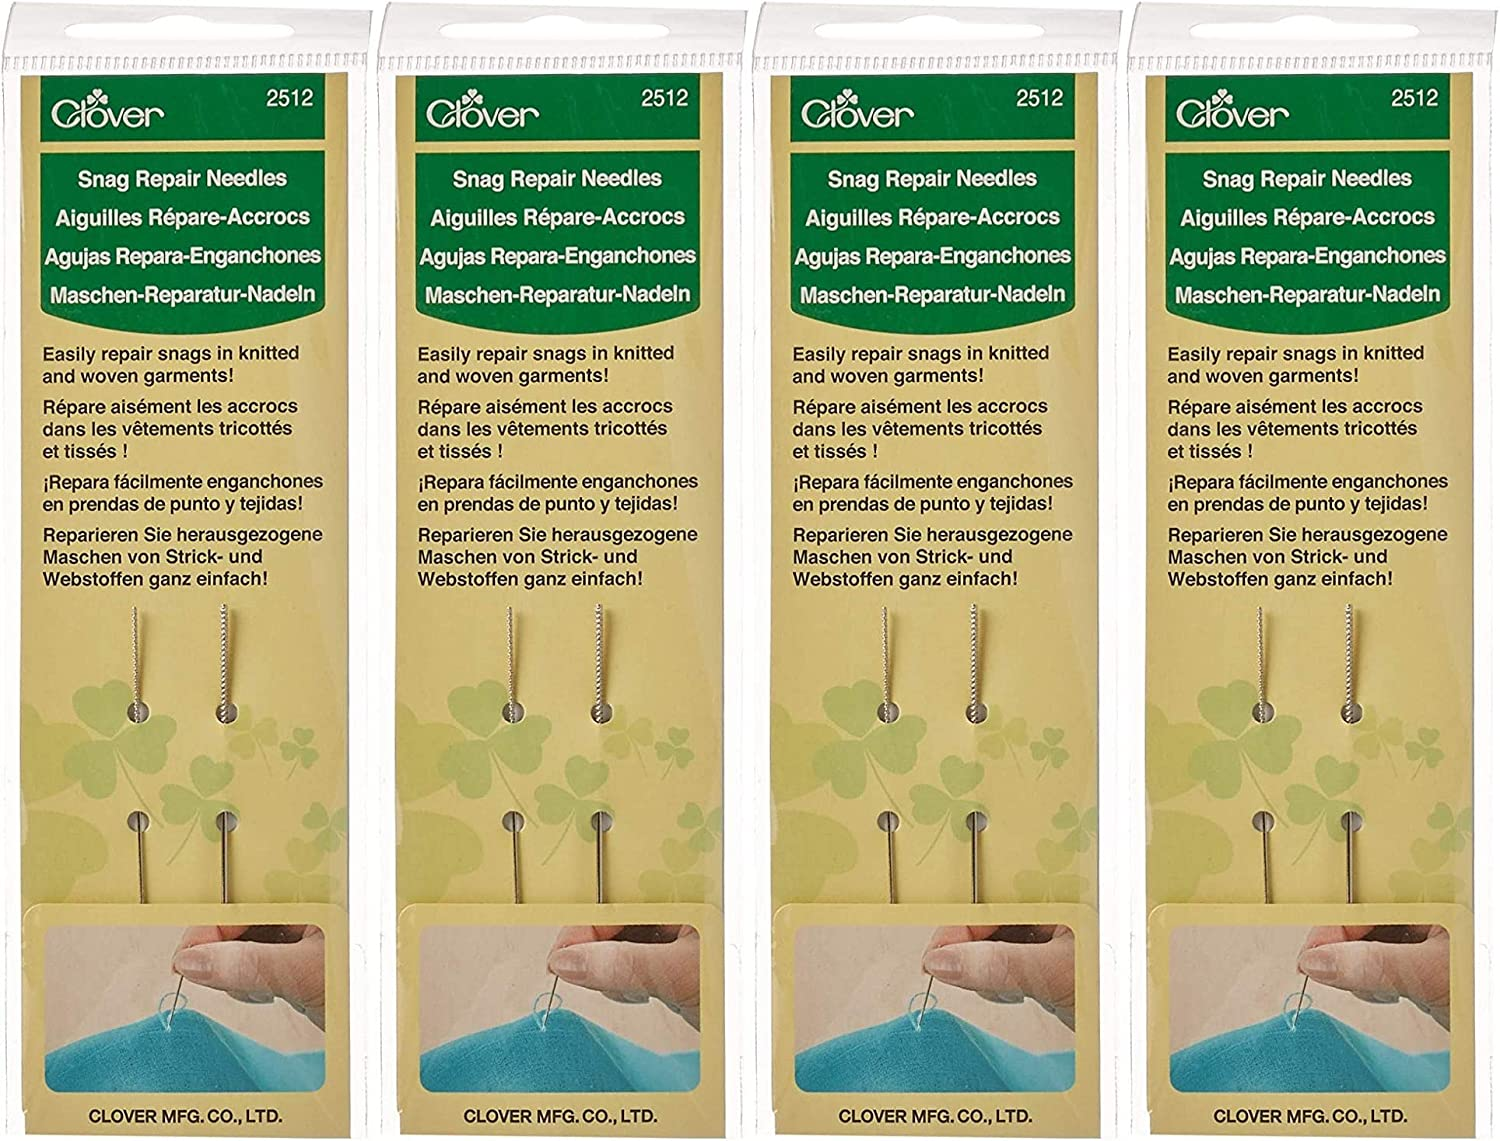 Silver 2 Count-2 Pack Clover Snag Repair Needles